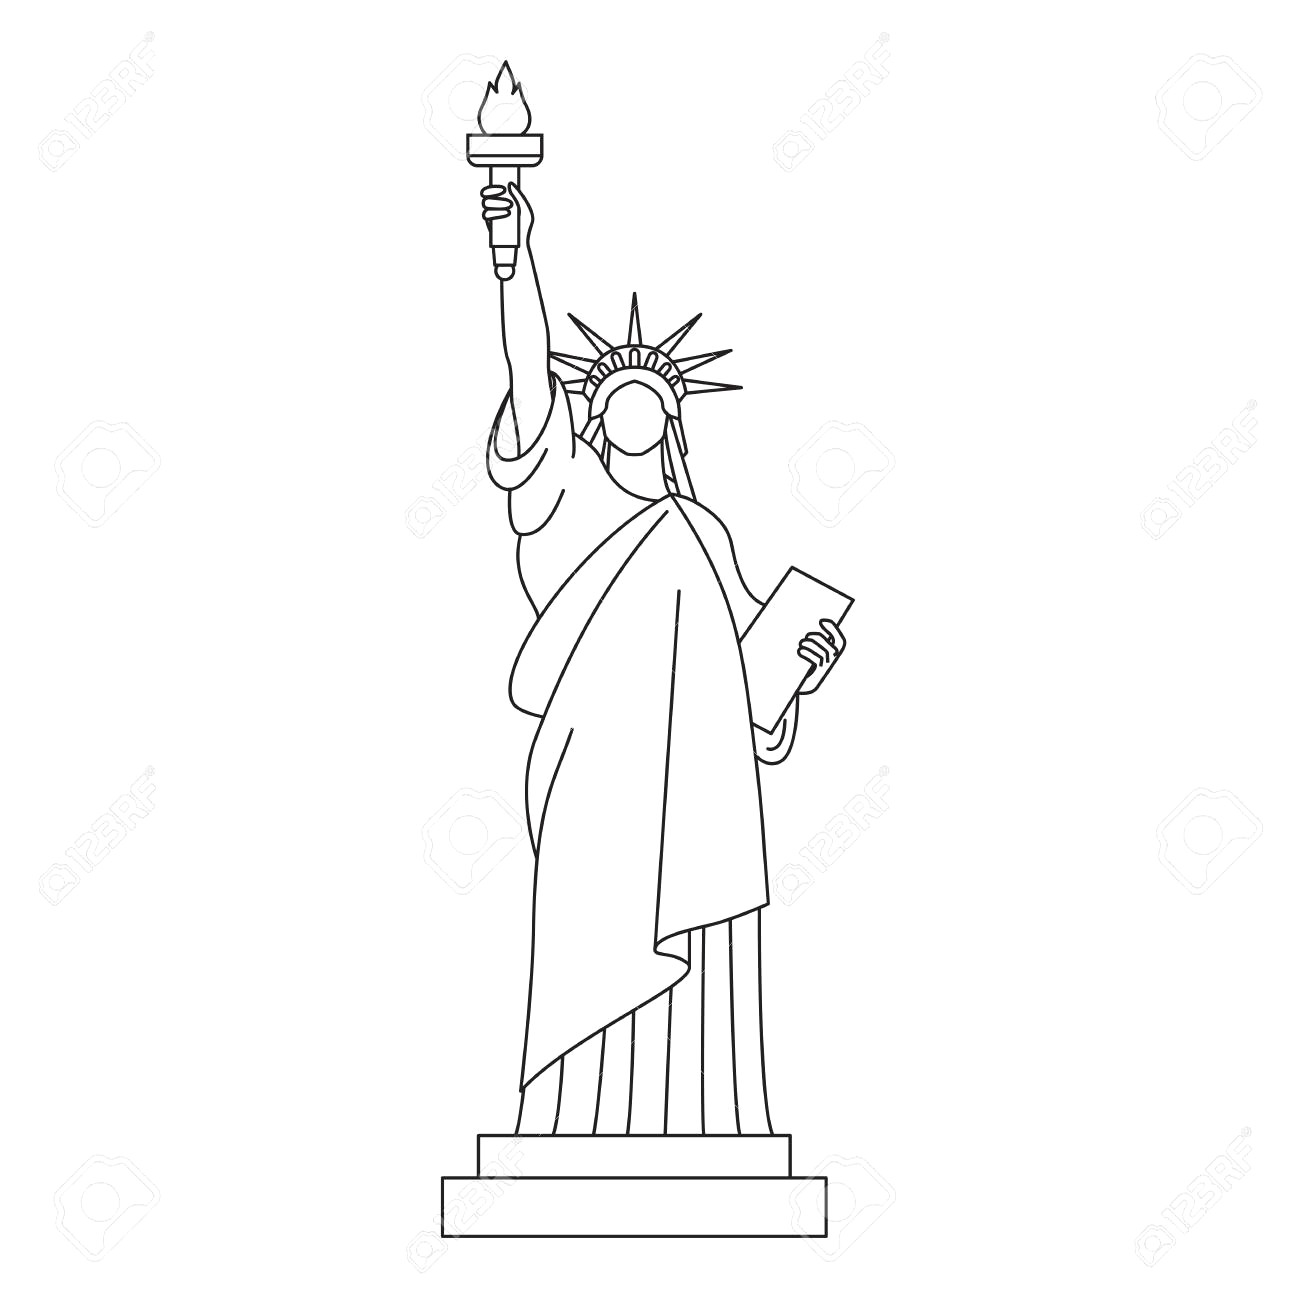 statue of liberty drawing step for step statue of liberty drawing step by step at getdrawings drawing for step statue liberty of step